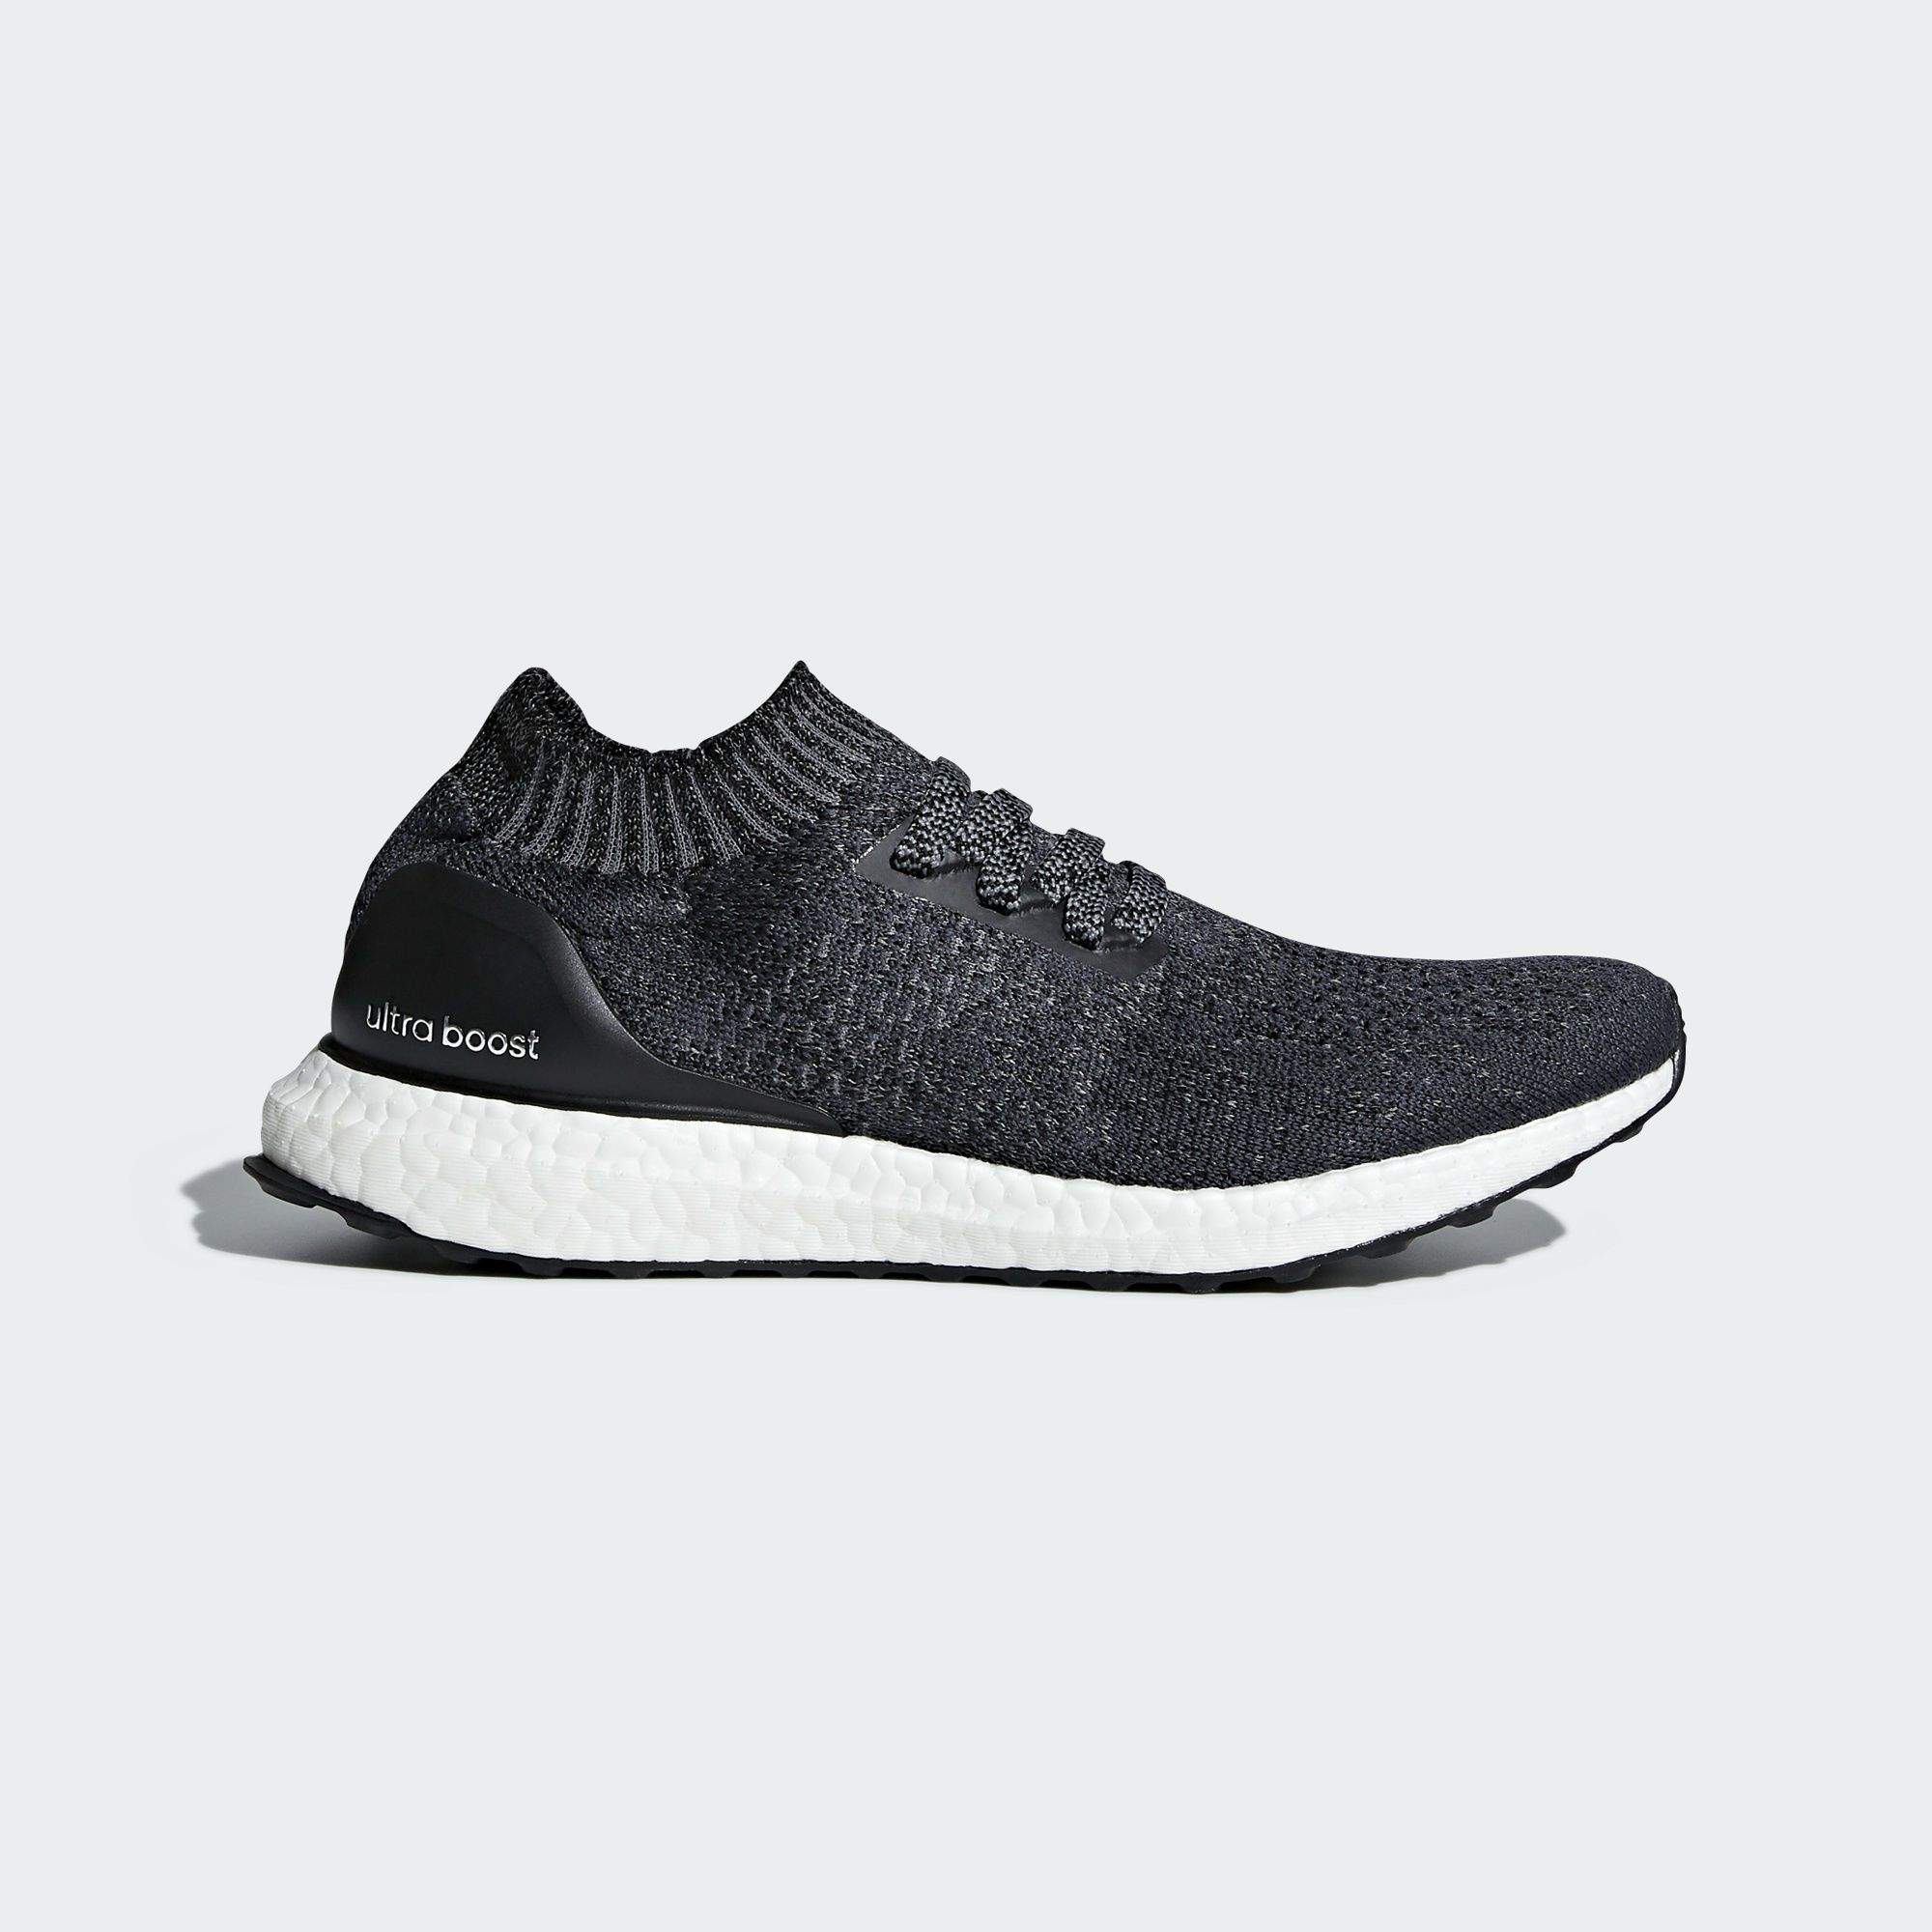 The adidas UltraBOOST Uncaged